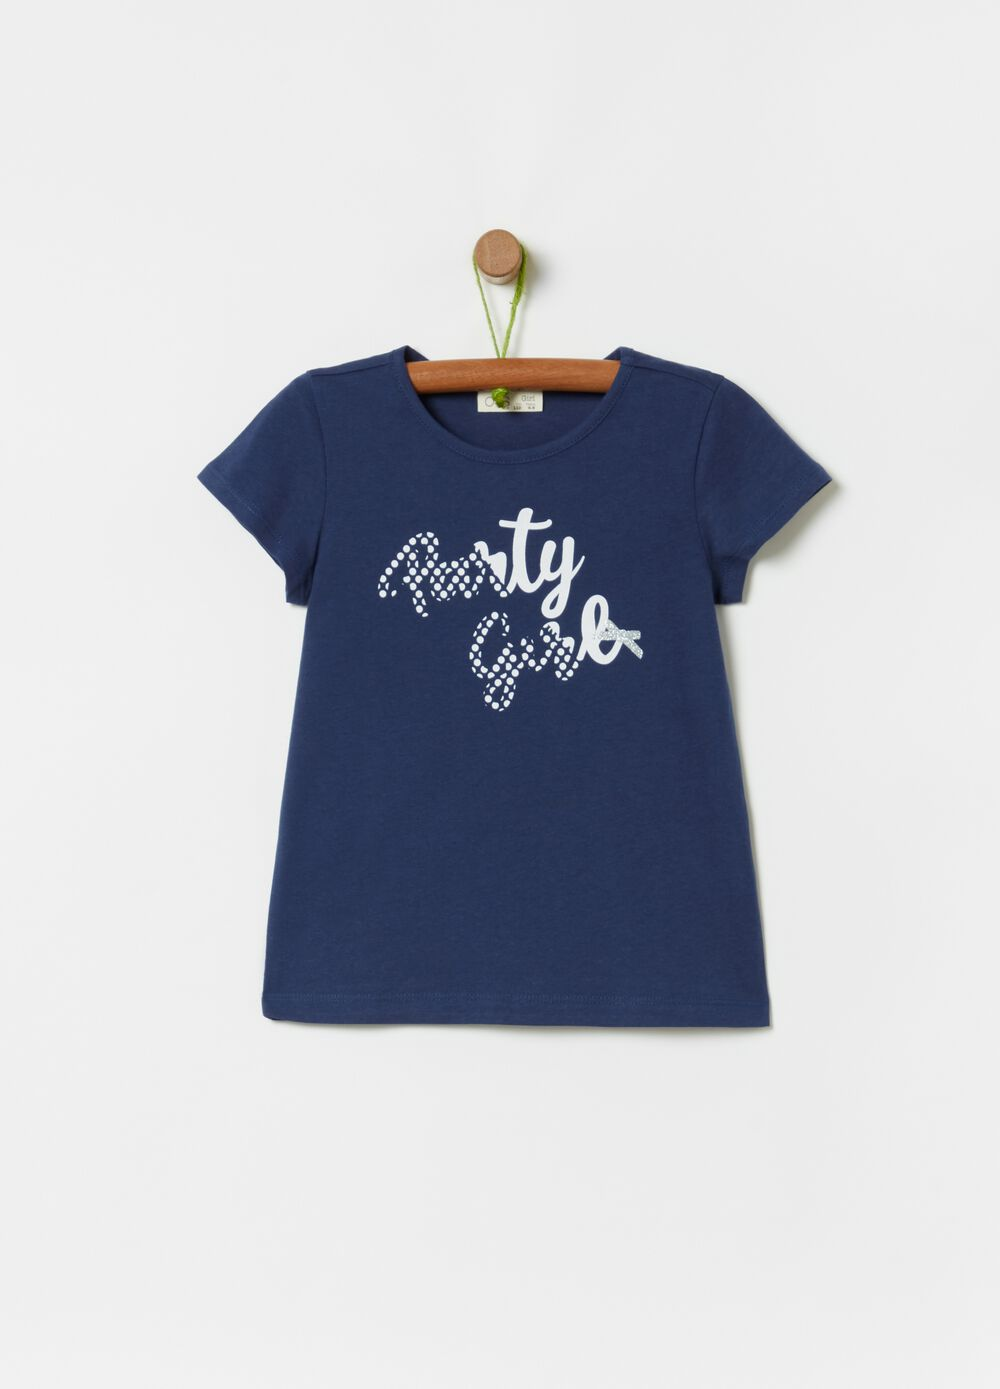 T-shirt in 100% cotton with glitter bows